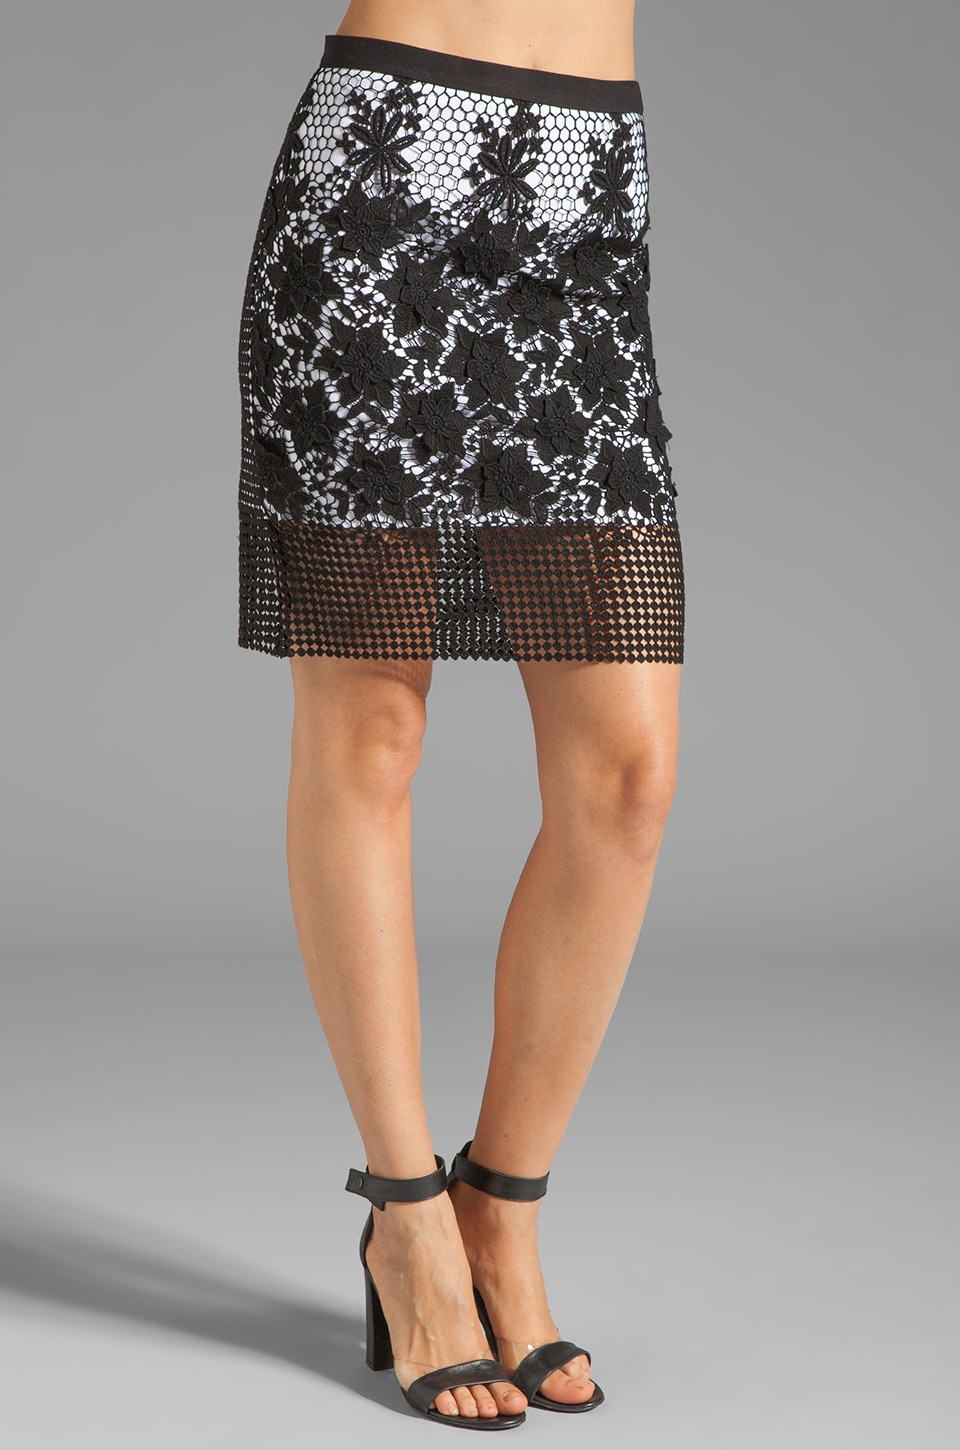 Tibi Basia Lace Pencil Skirt in Black